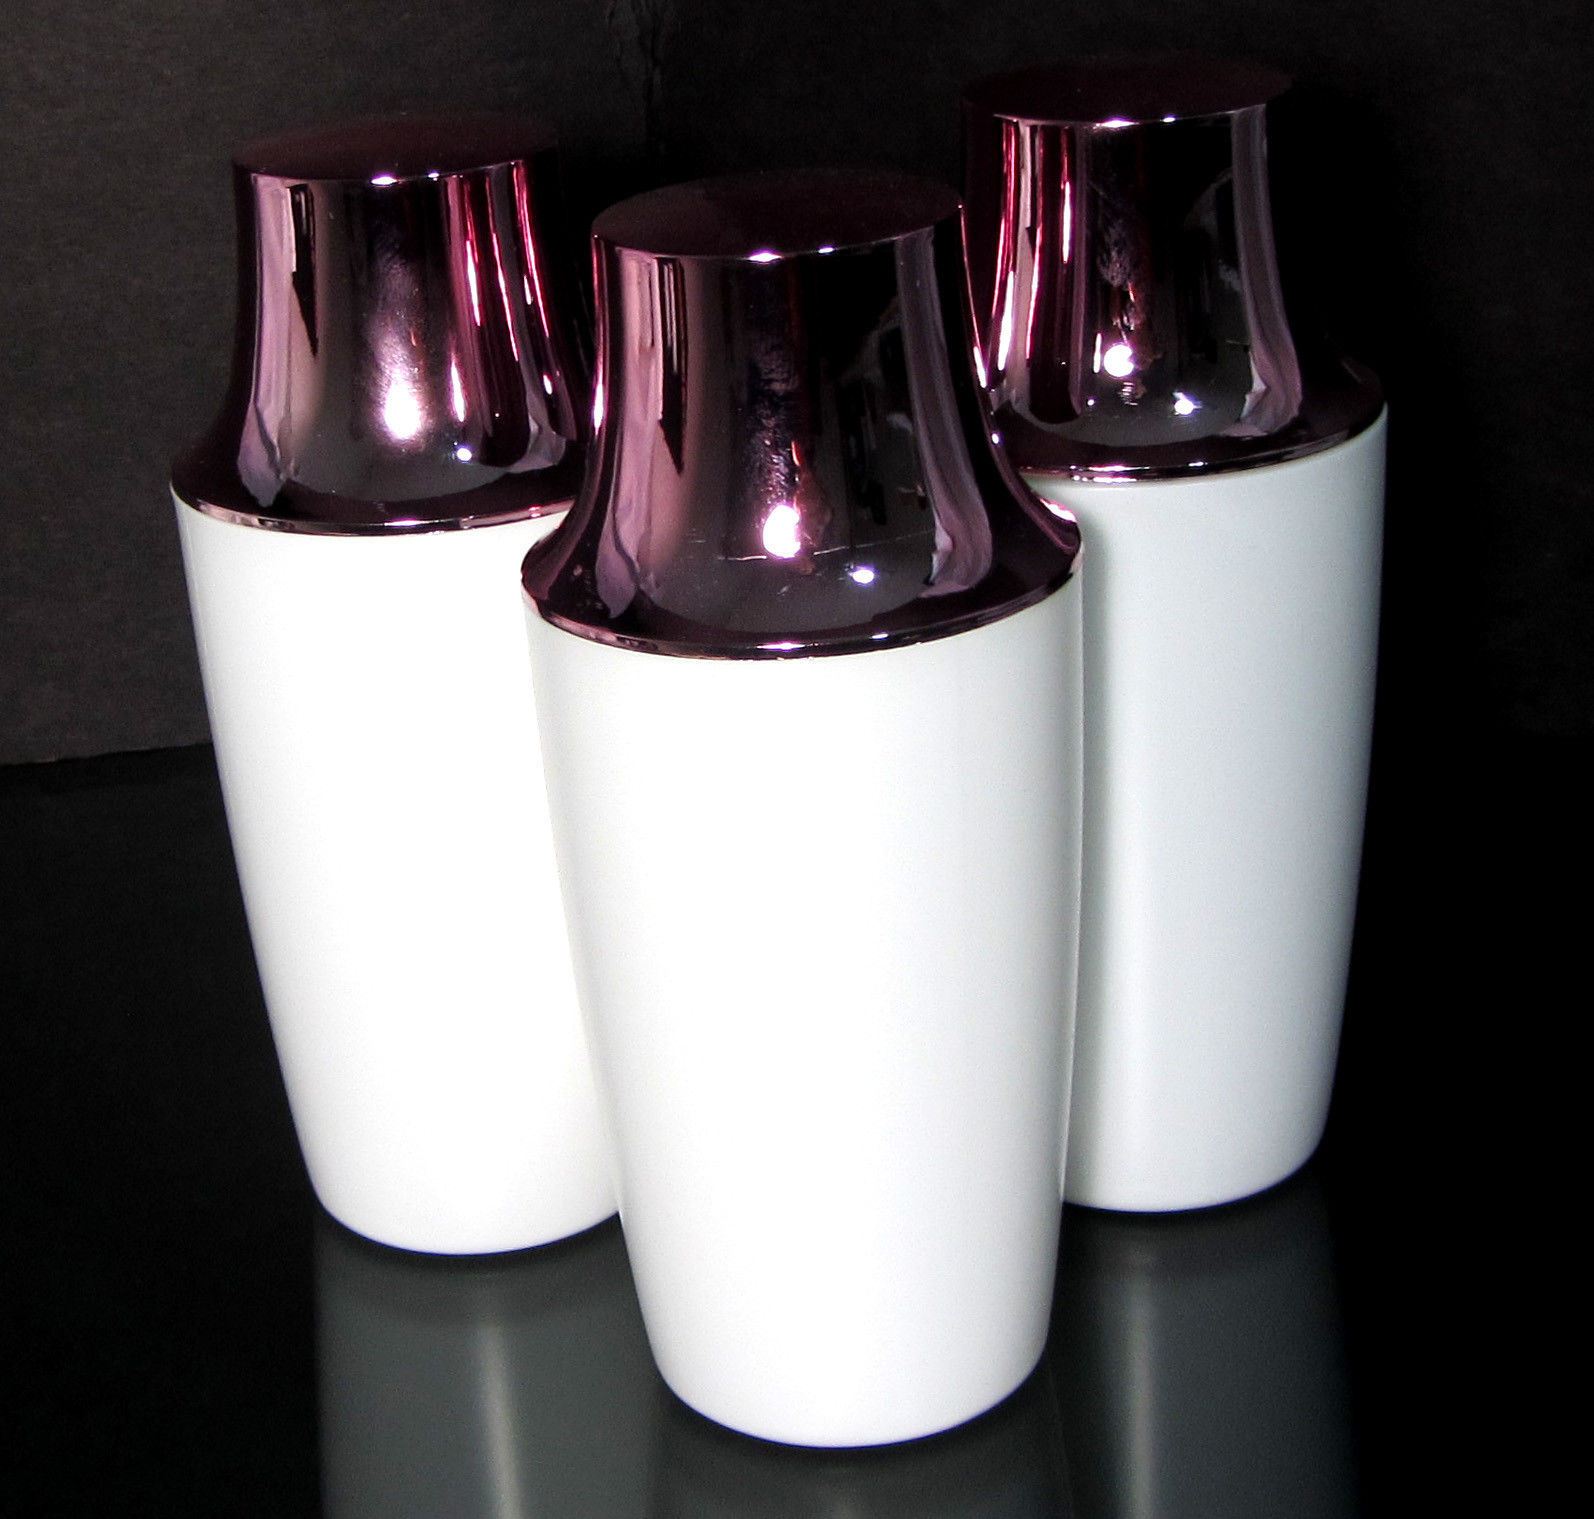 50 White Plastic Bottles Glossy Pink Cap Cosmetic Beauty Containers 8.5 oz #9328 - $67.95